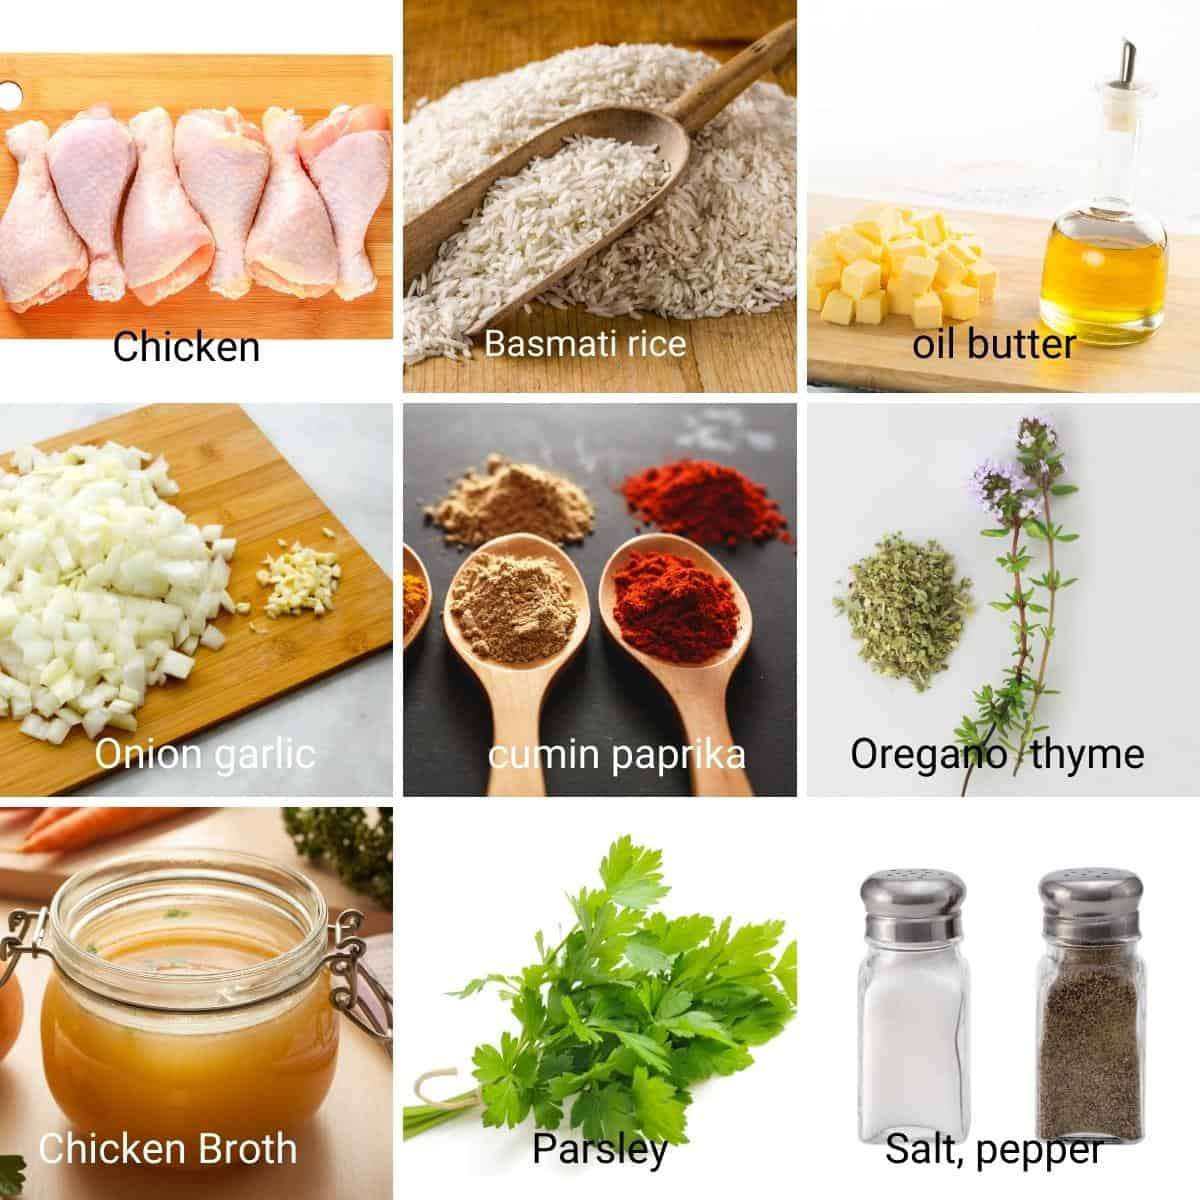 Ingredients shot collage for chicken with rice.